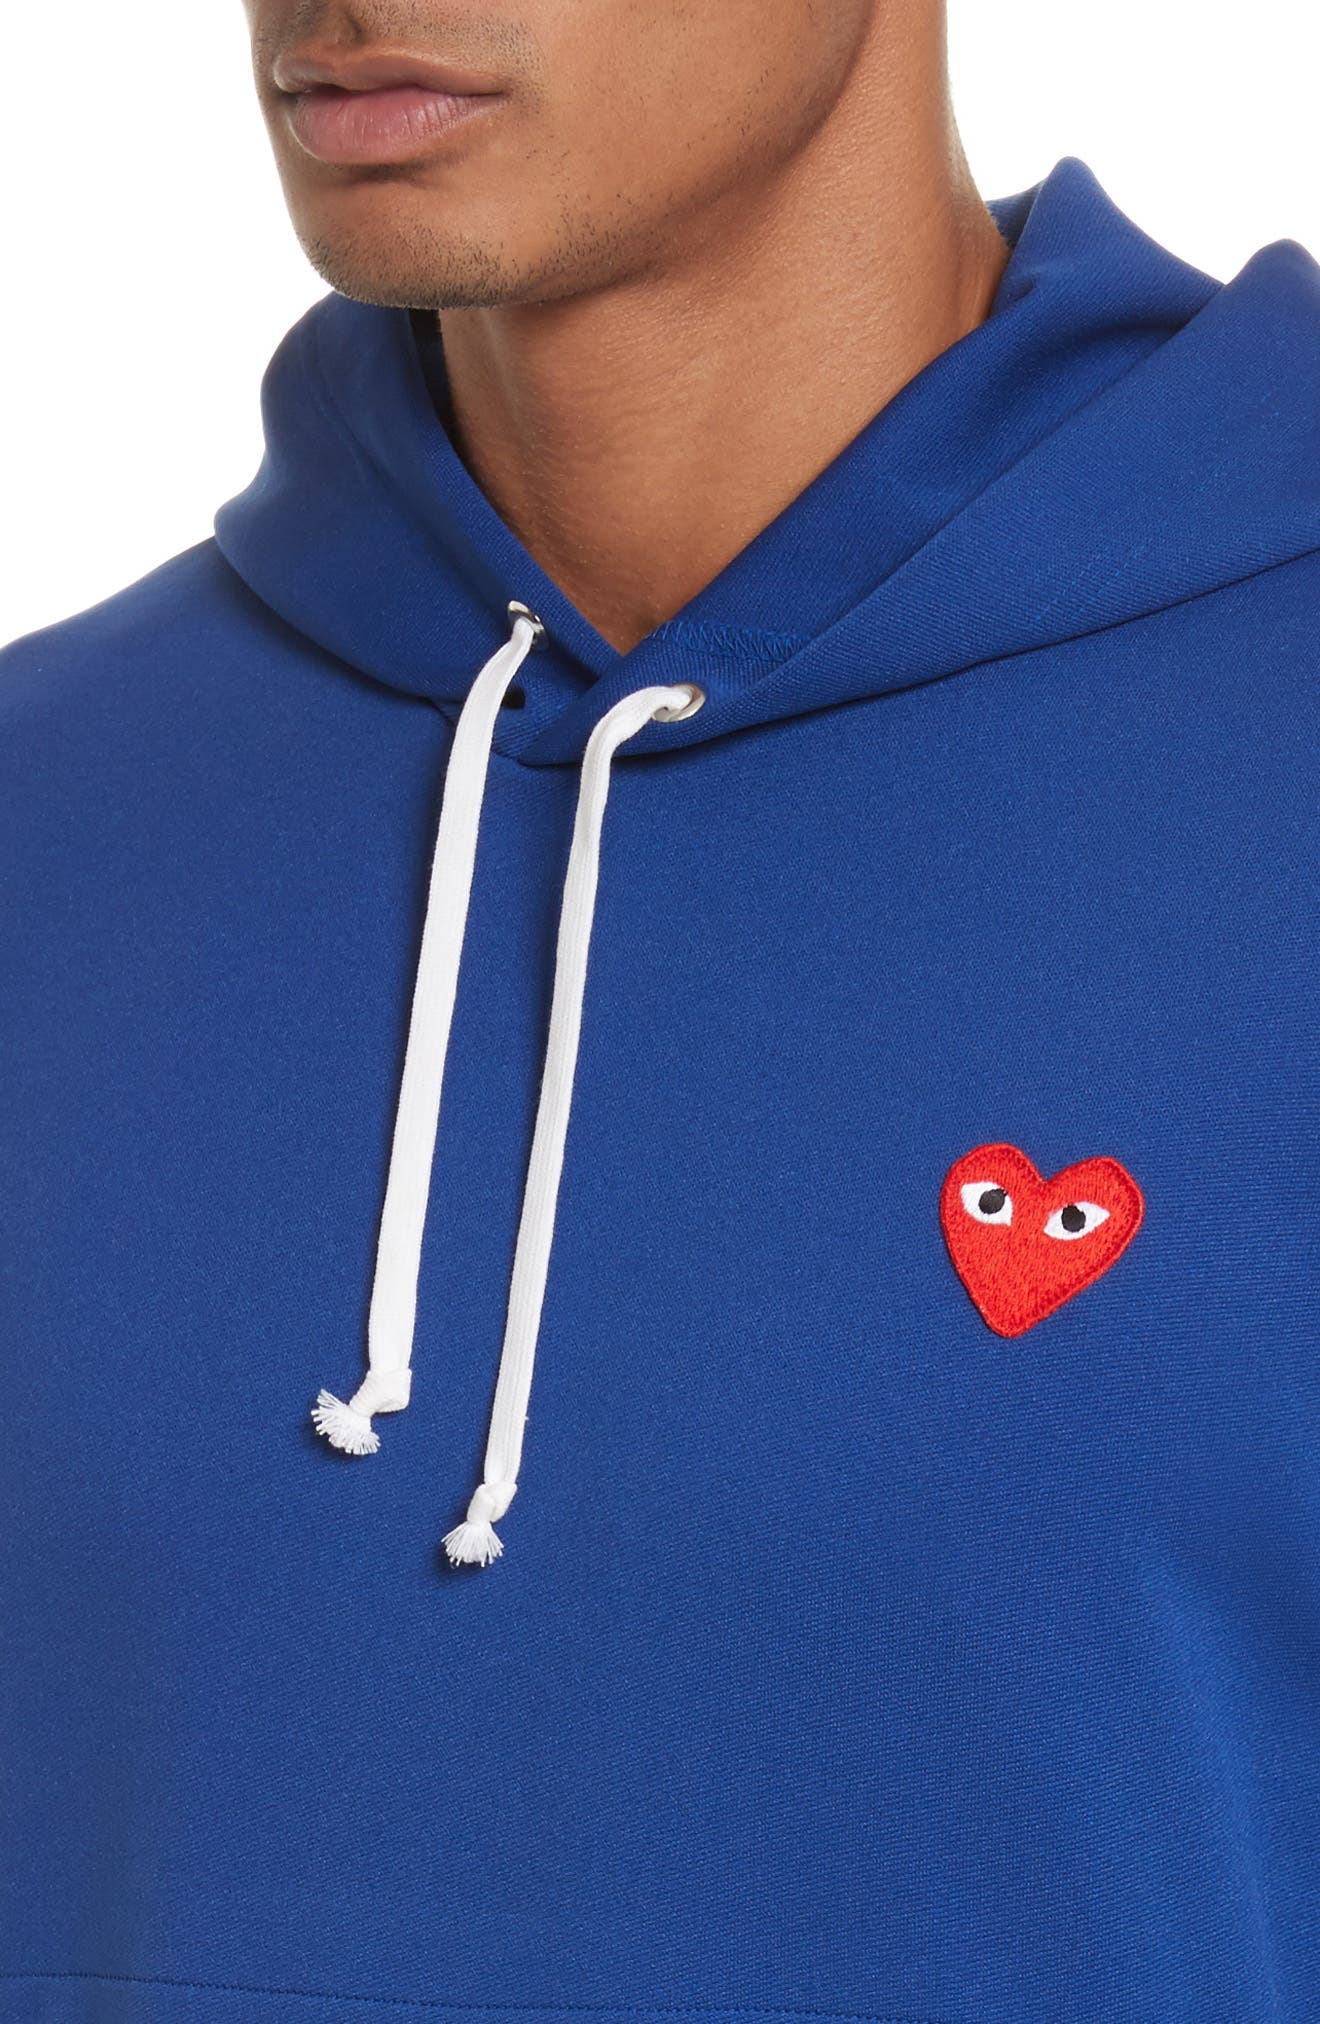 Comme des Garçons PLAY Pullover Hoodie,                             Alternate thumbnail 4, color,                             Navy